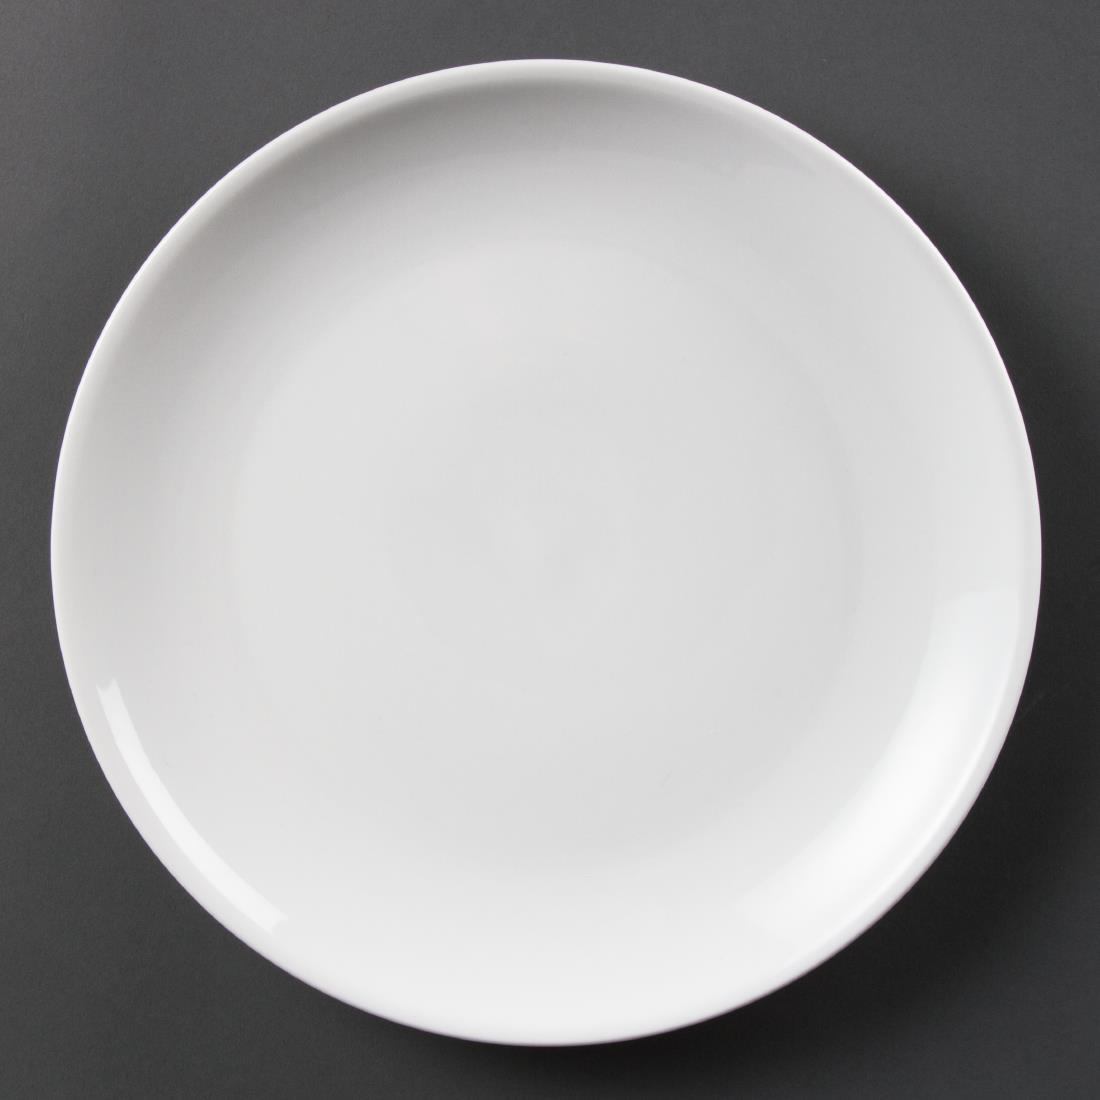 Olympia Whiteware Coupe Plates 280mm